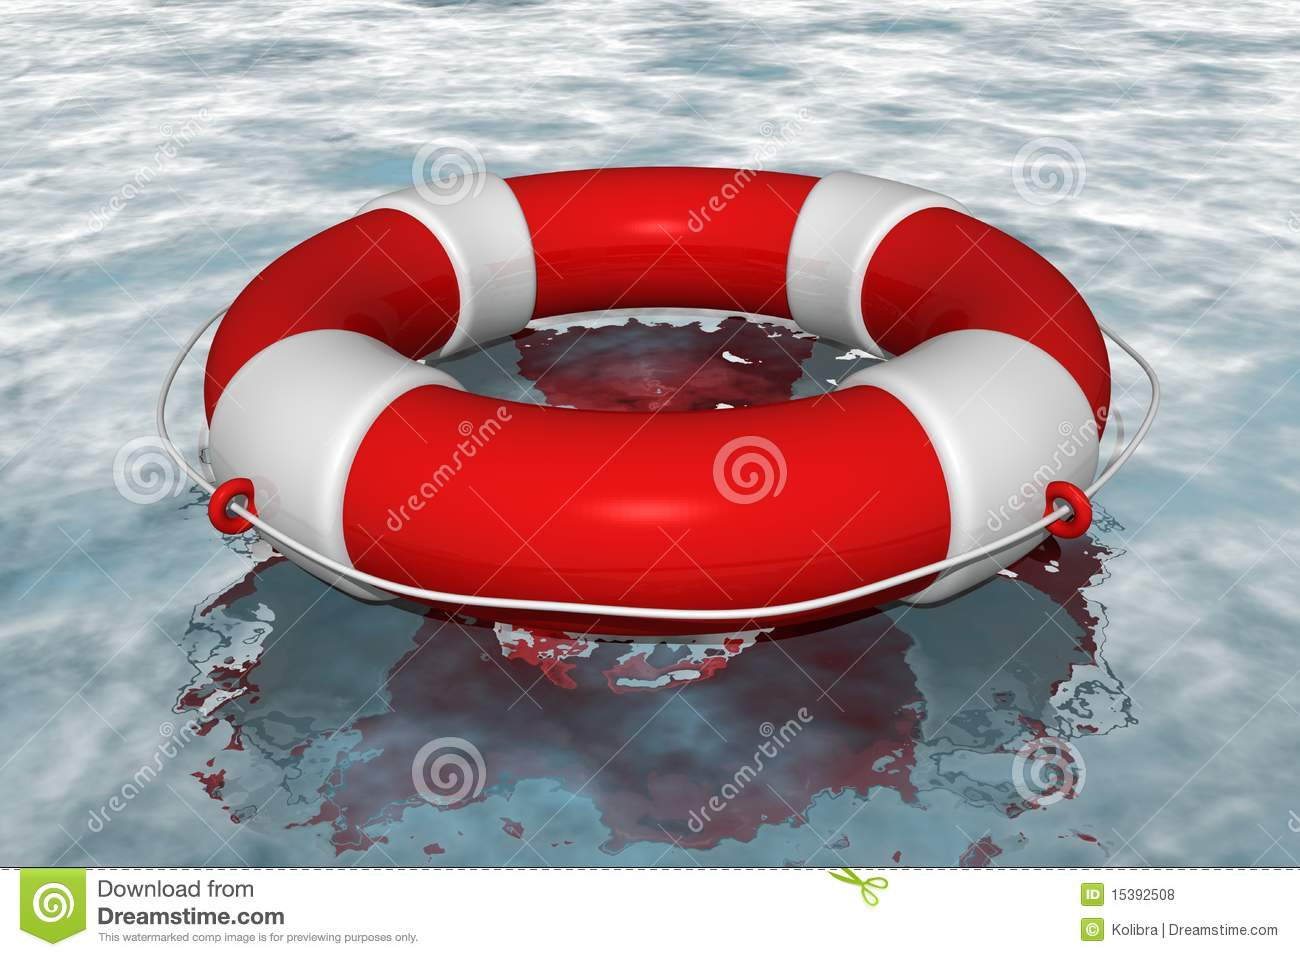 Red Life Buoy In The Water Royalty Free Stock Photos ...